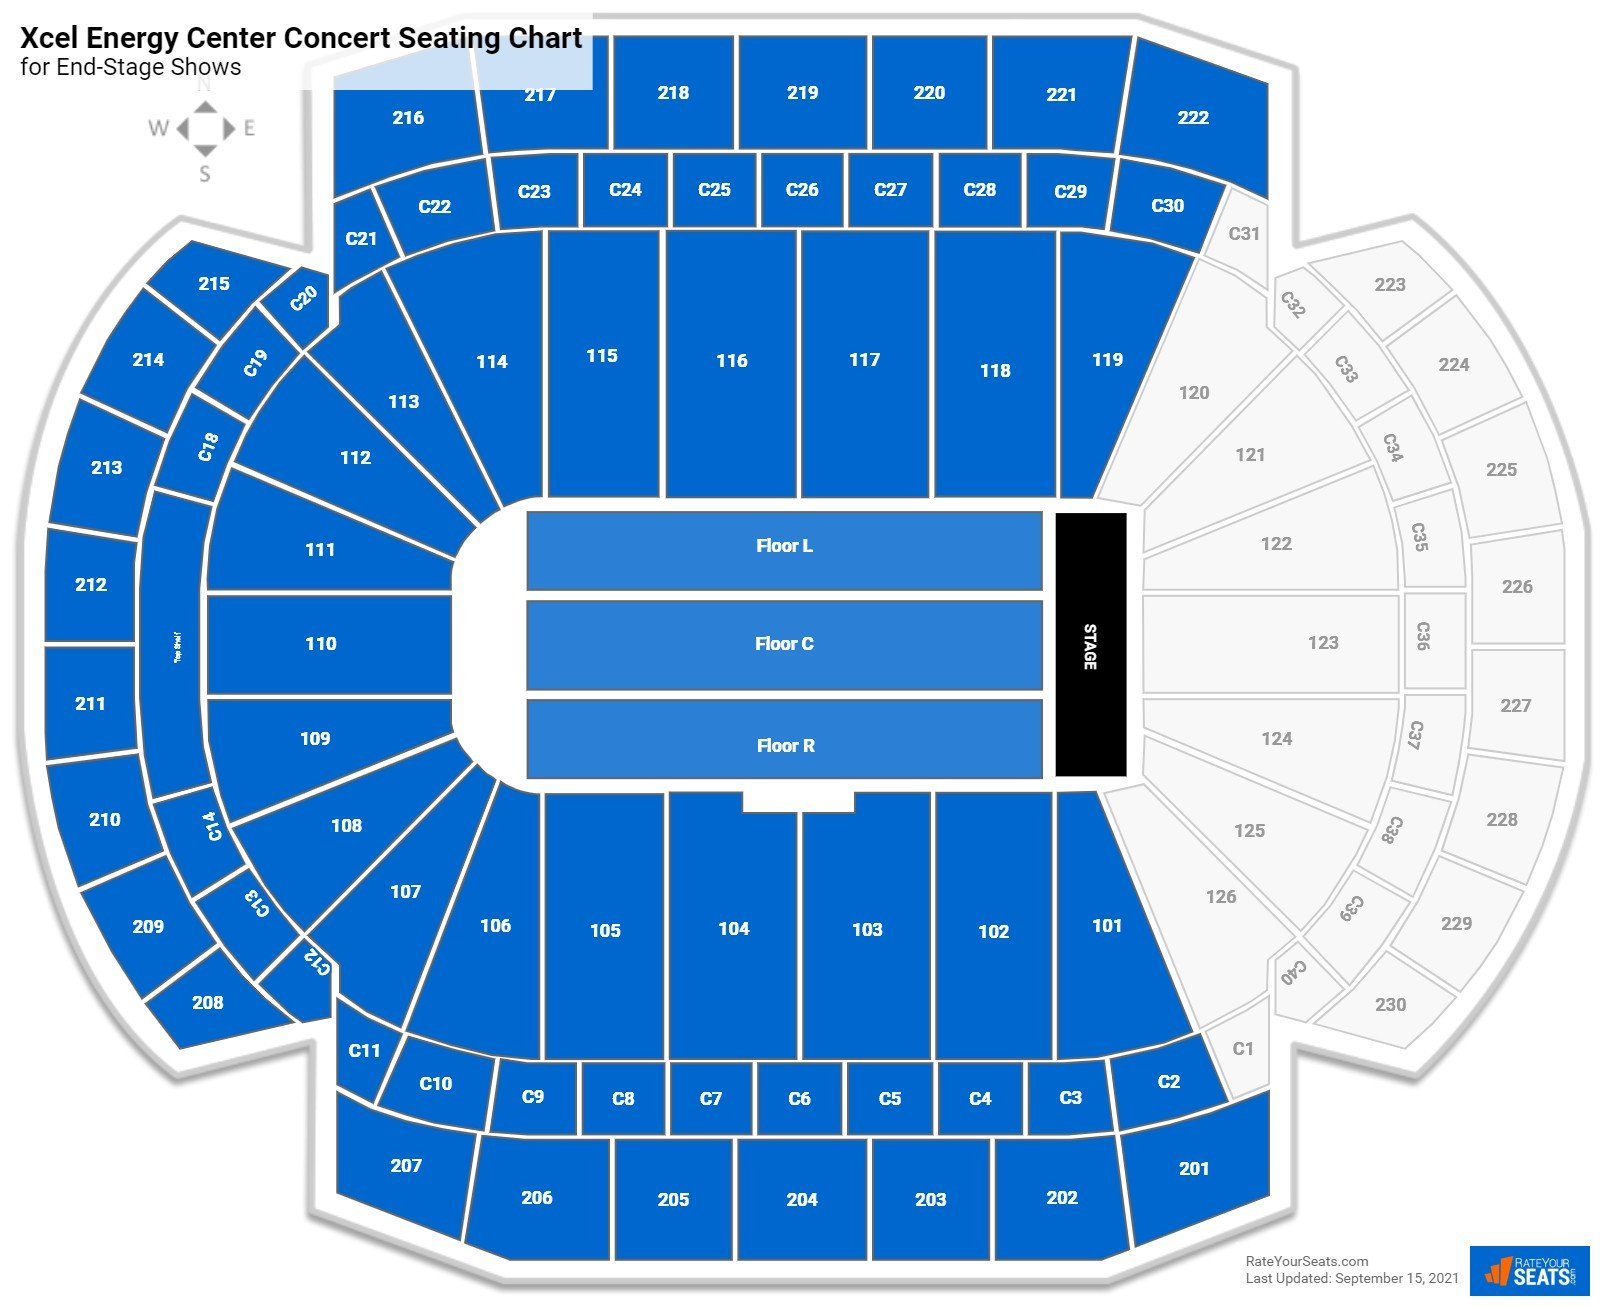 Xcel Energy Center Seating Chart for Concerts